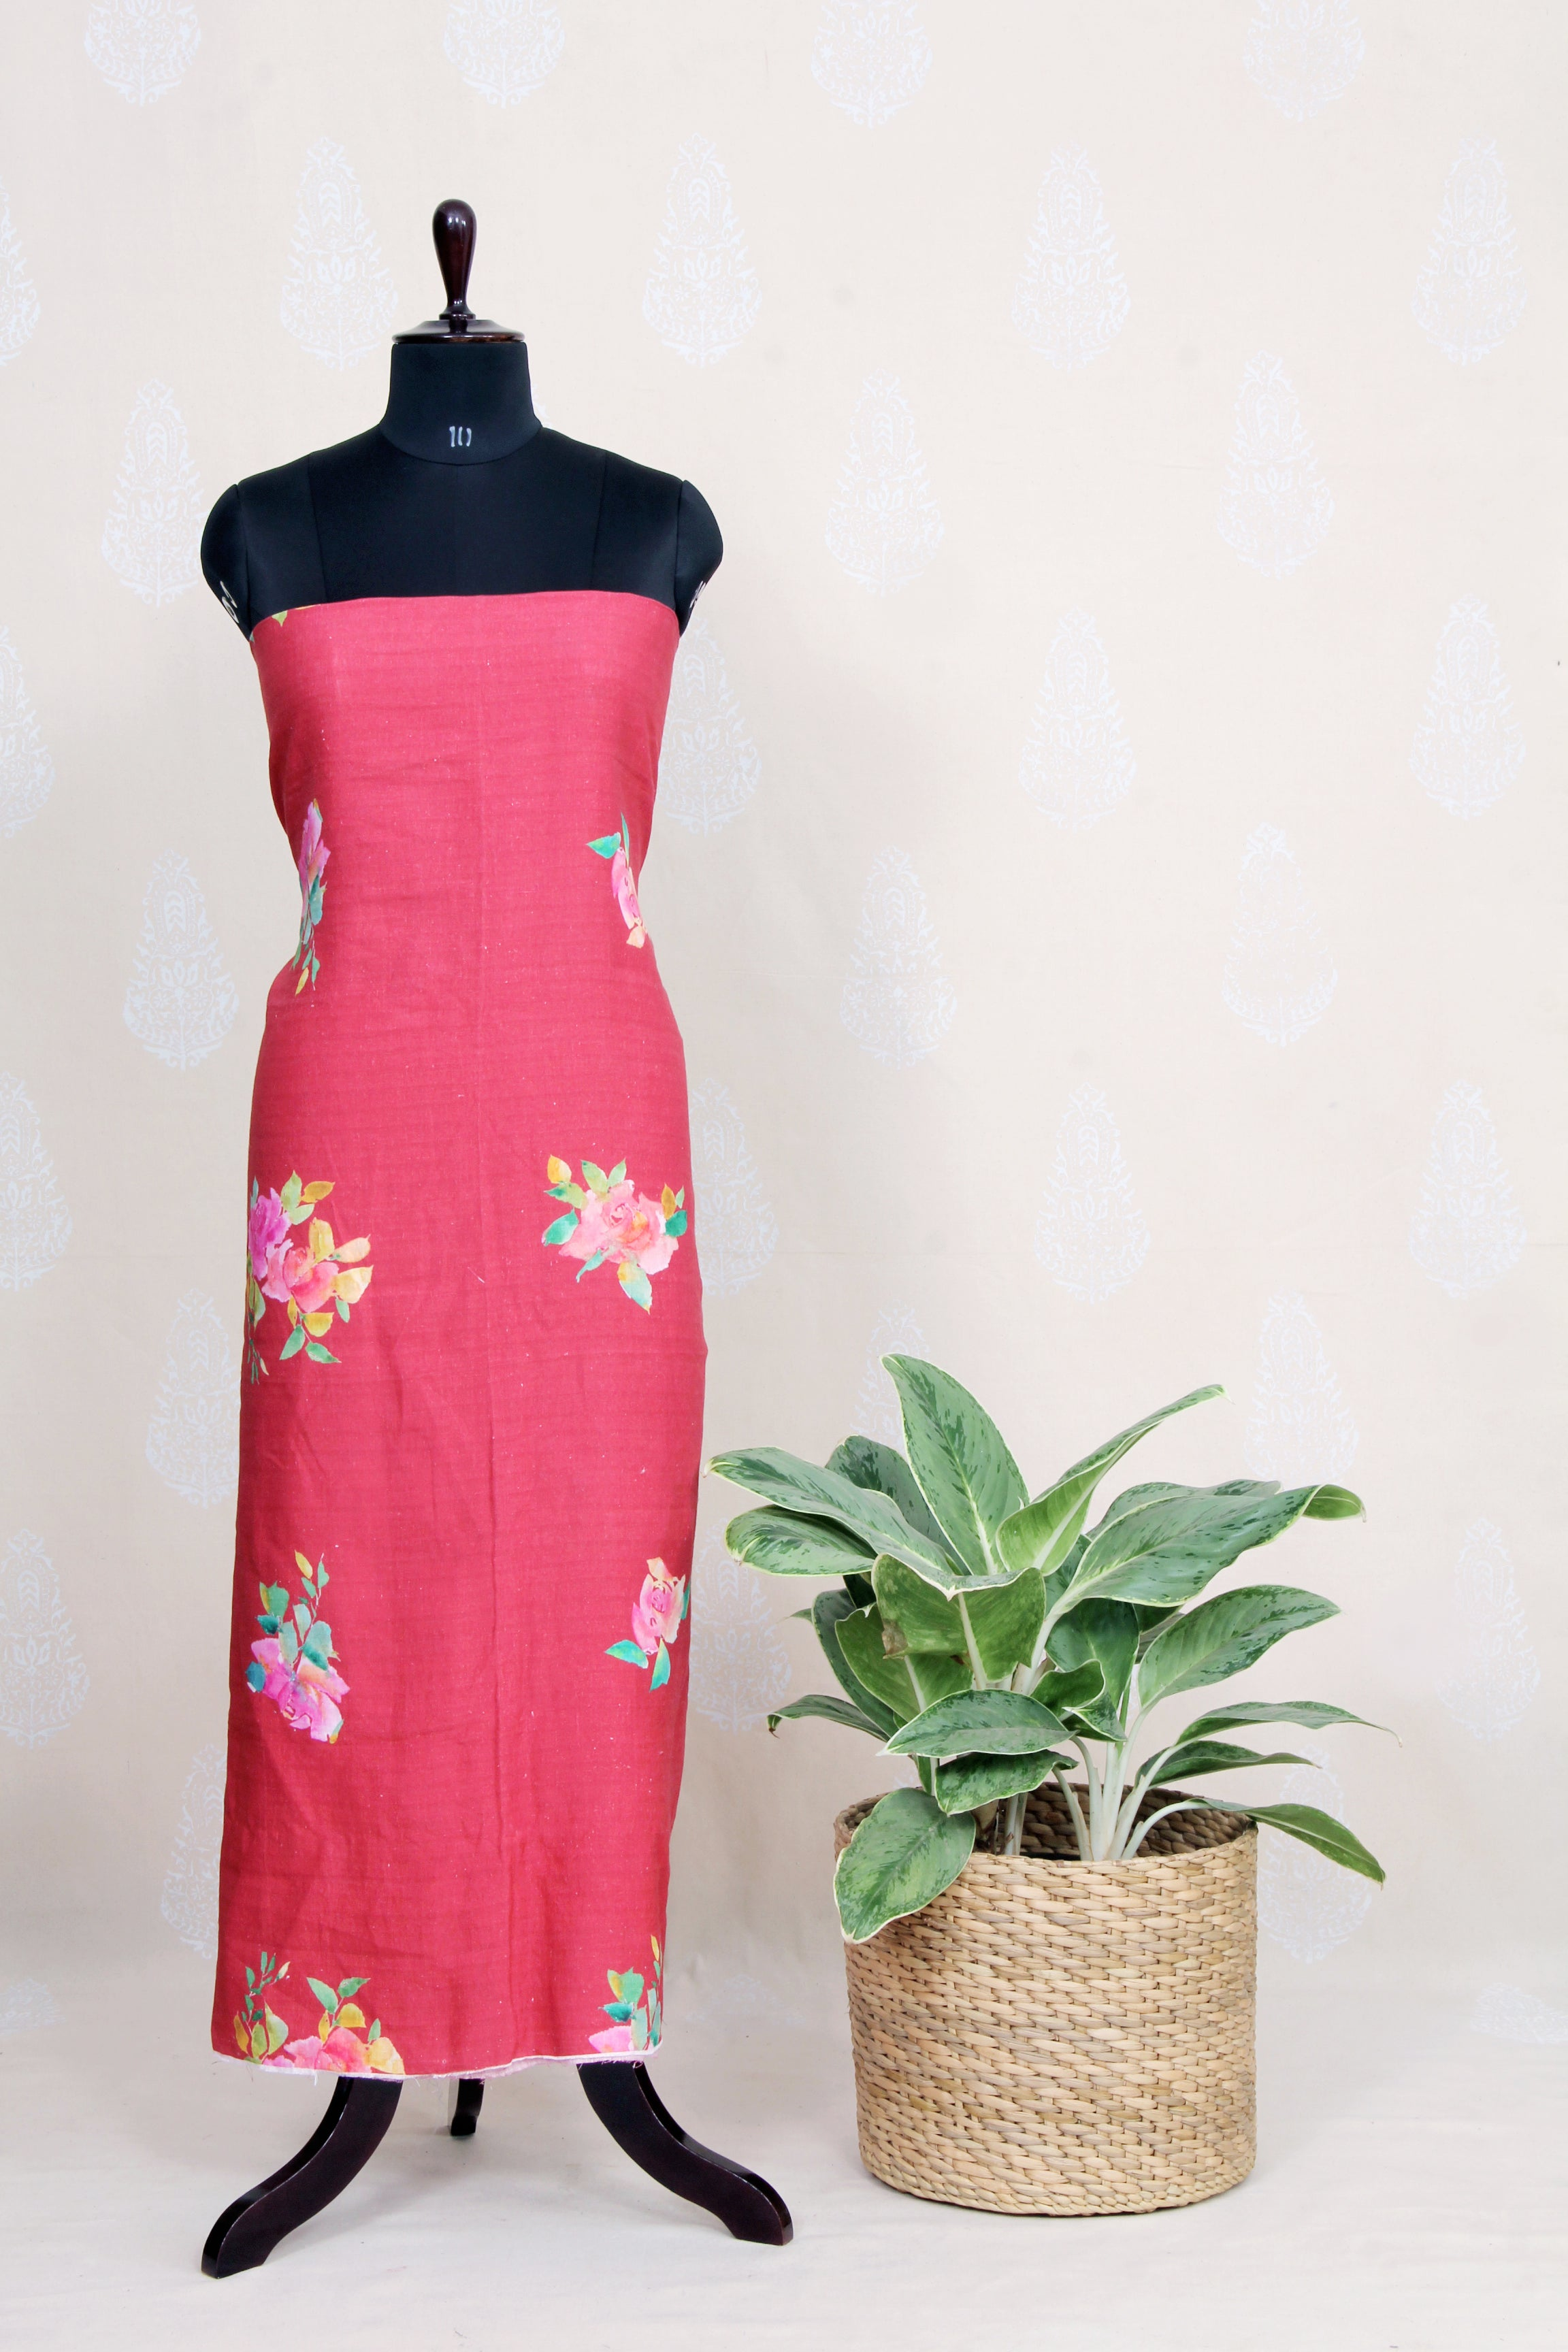 Handwoven Red Linen Kurtha Material With Water Color Print-Red - Tina Eapen Design Studio